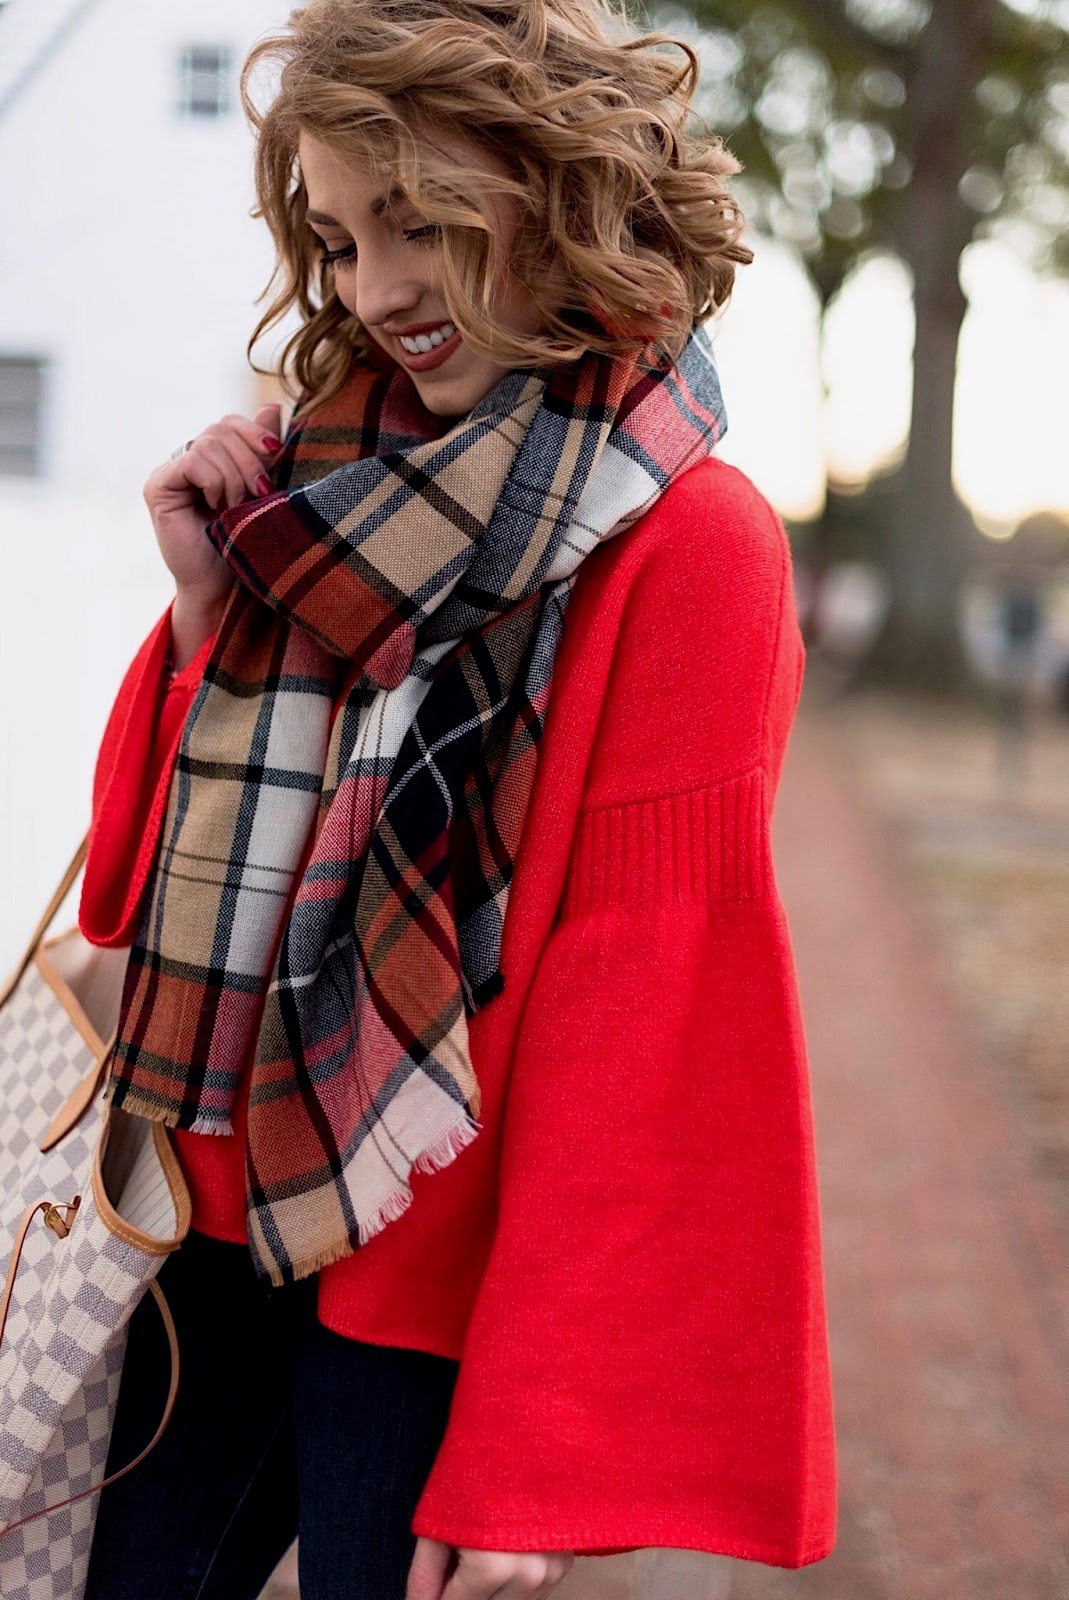 Red Sweater + Plaid Scarf - Something Delightful Blog